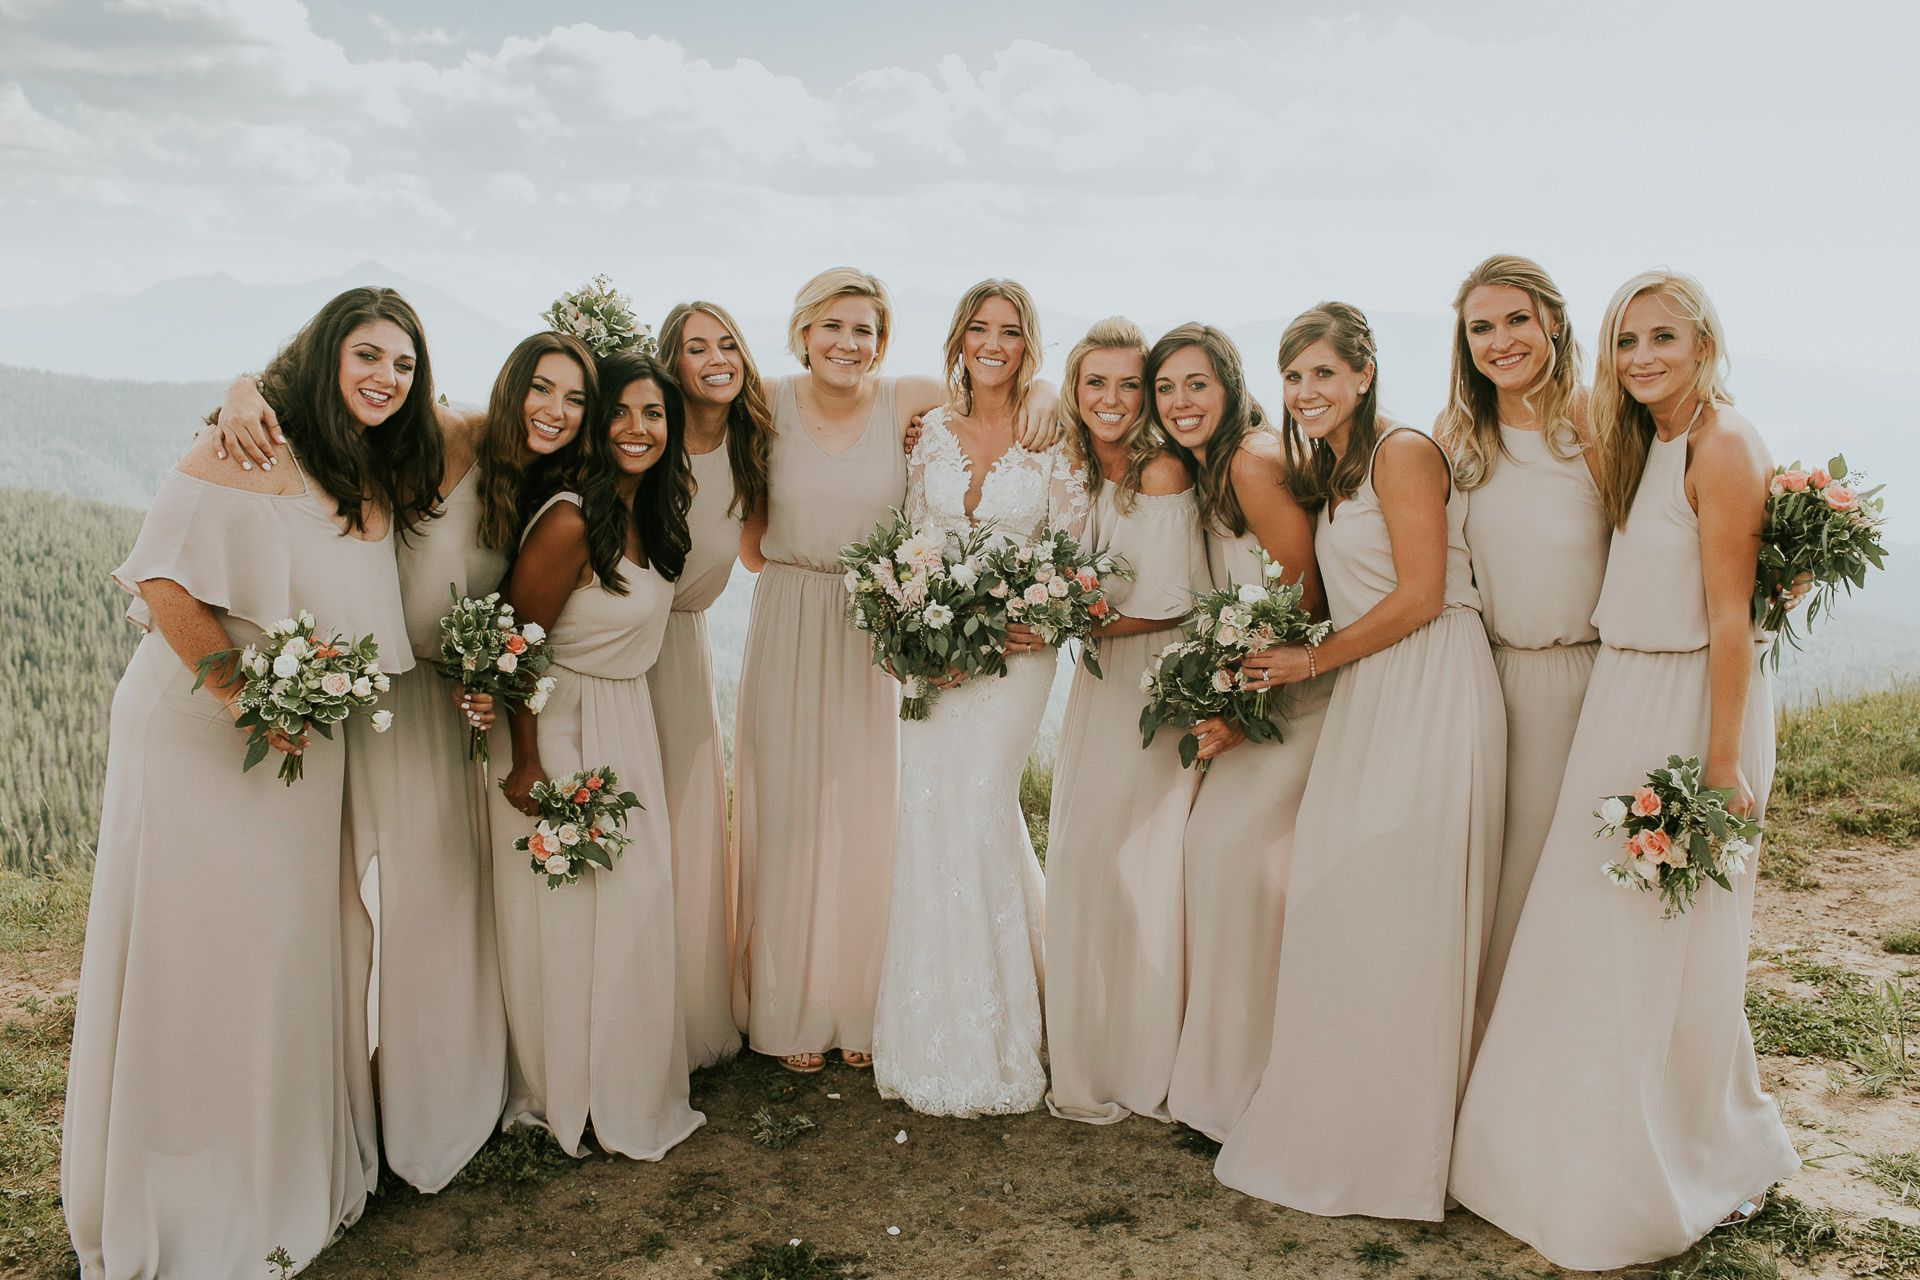 Affordable wedding dress designers list  Organic bohemian Sonnenalp Hotel wedding in Vail Colorado Ines di